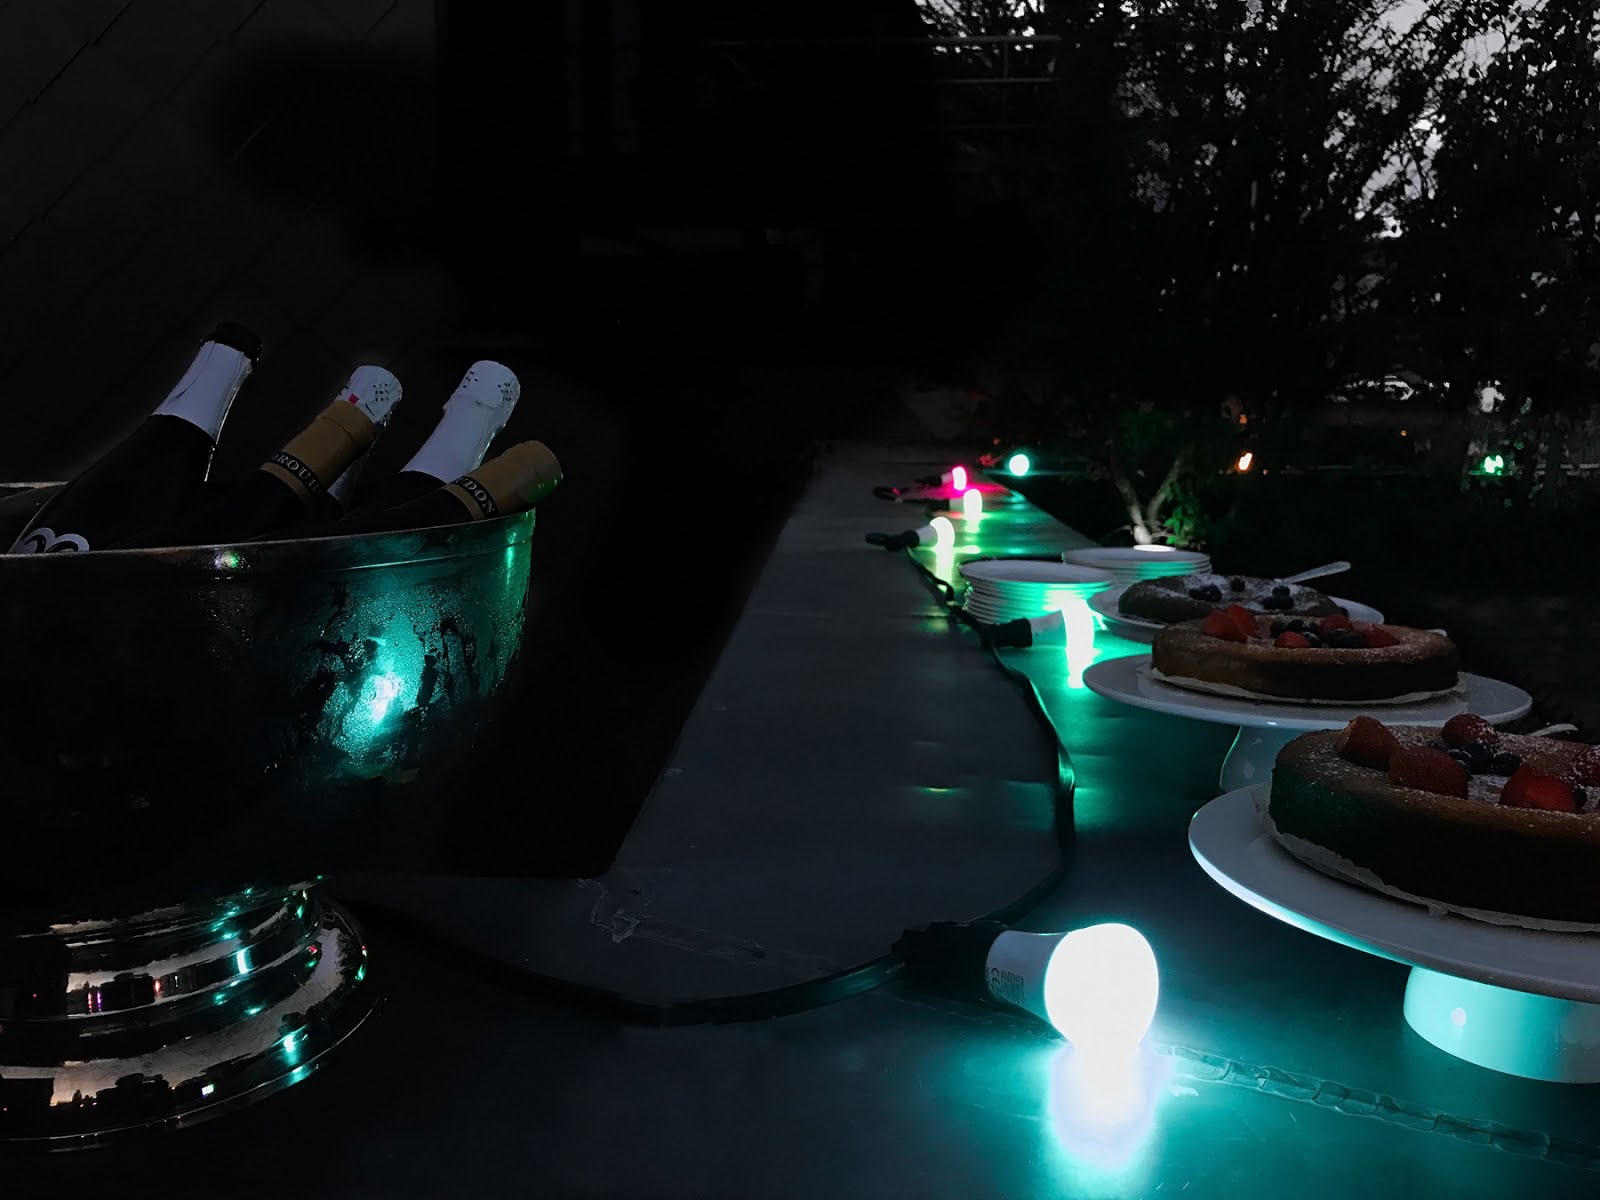 Philips hue, wireless light, wellbeing, event, hotel julien antwerp, rooftop party